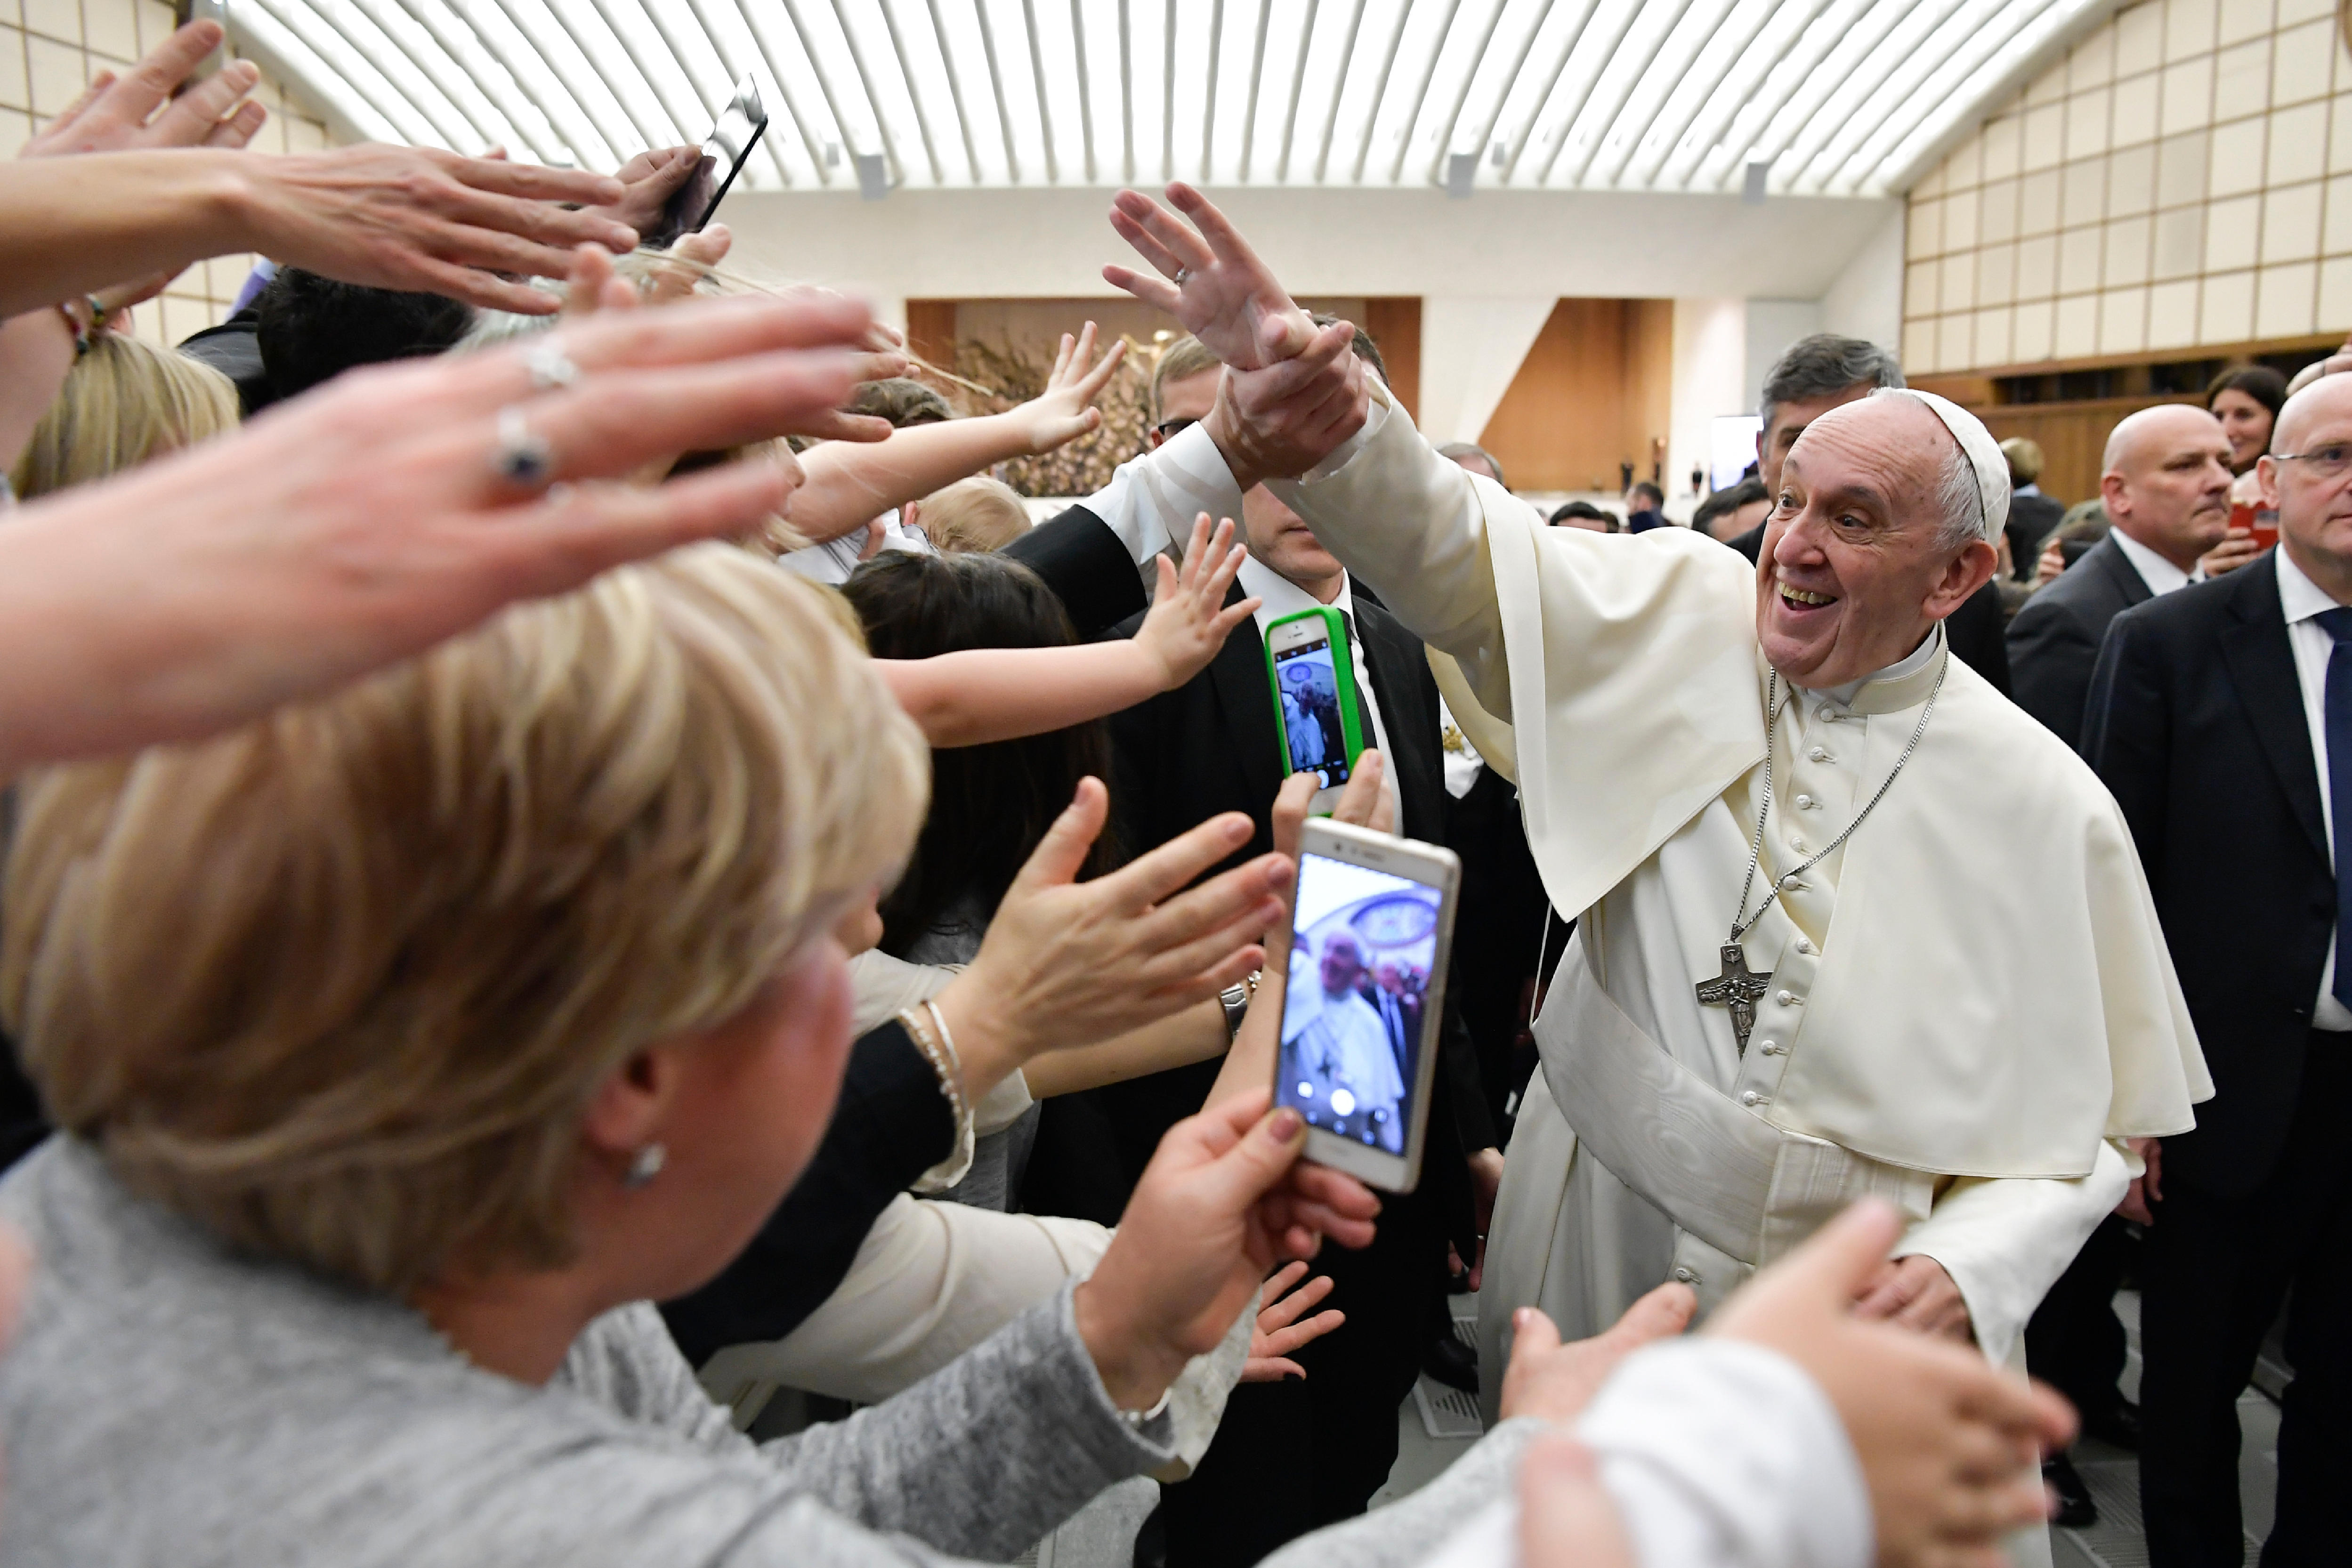 Pope Francis is cheered by faithful during an audience with health workers, in the Paul VI hall at the Vatican, Saturday, March 3, 2019. (L'Osservatore Romano/ANSA via AP)